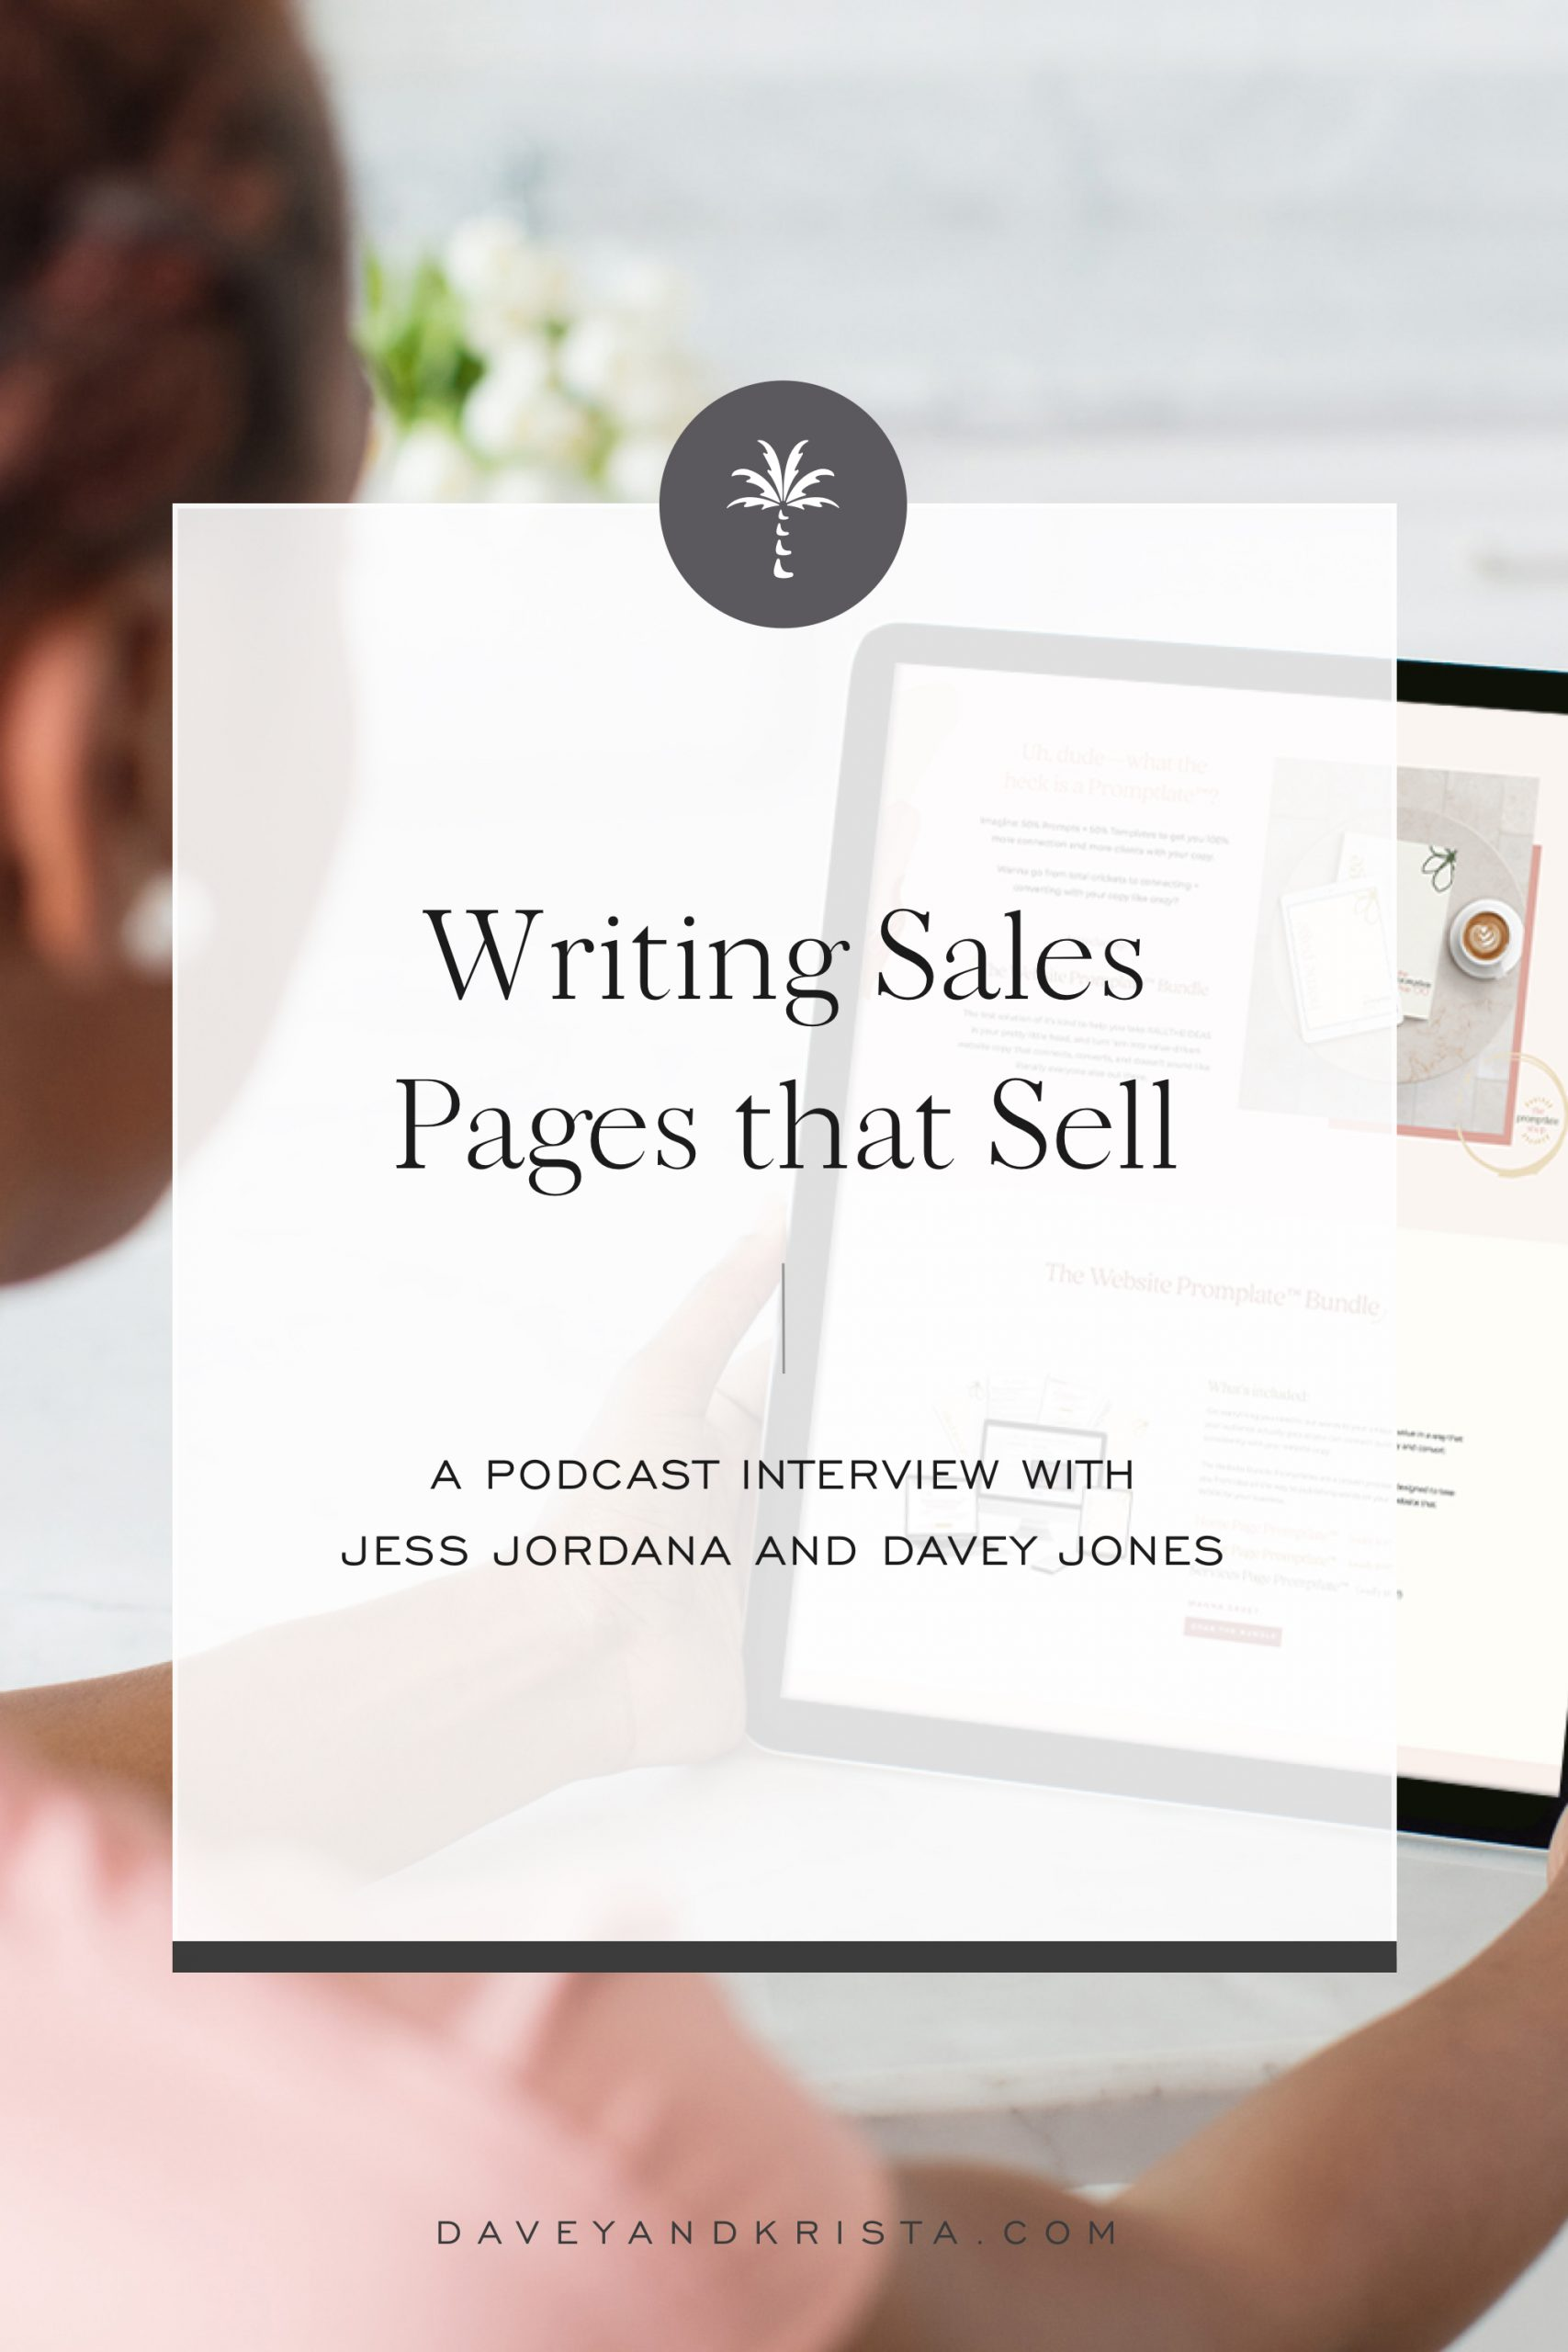 Writing Sales Pages that Sell   Davey & Krista